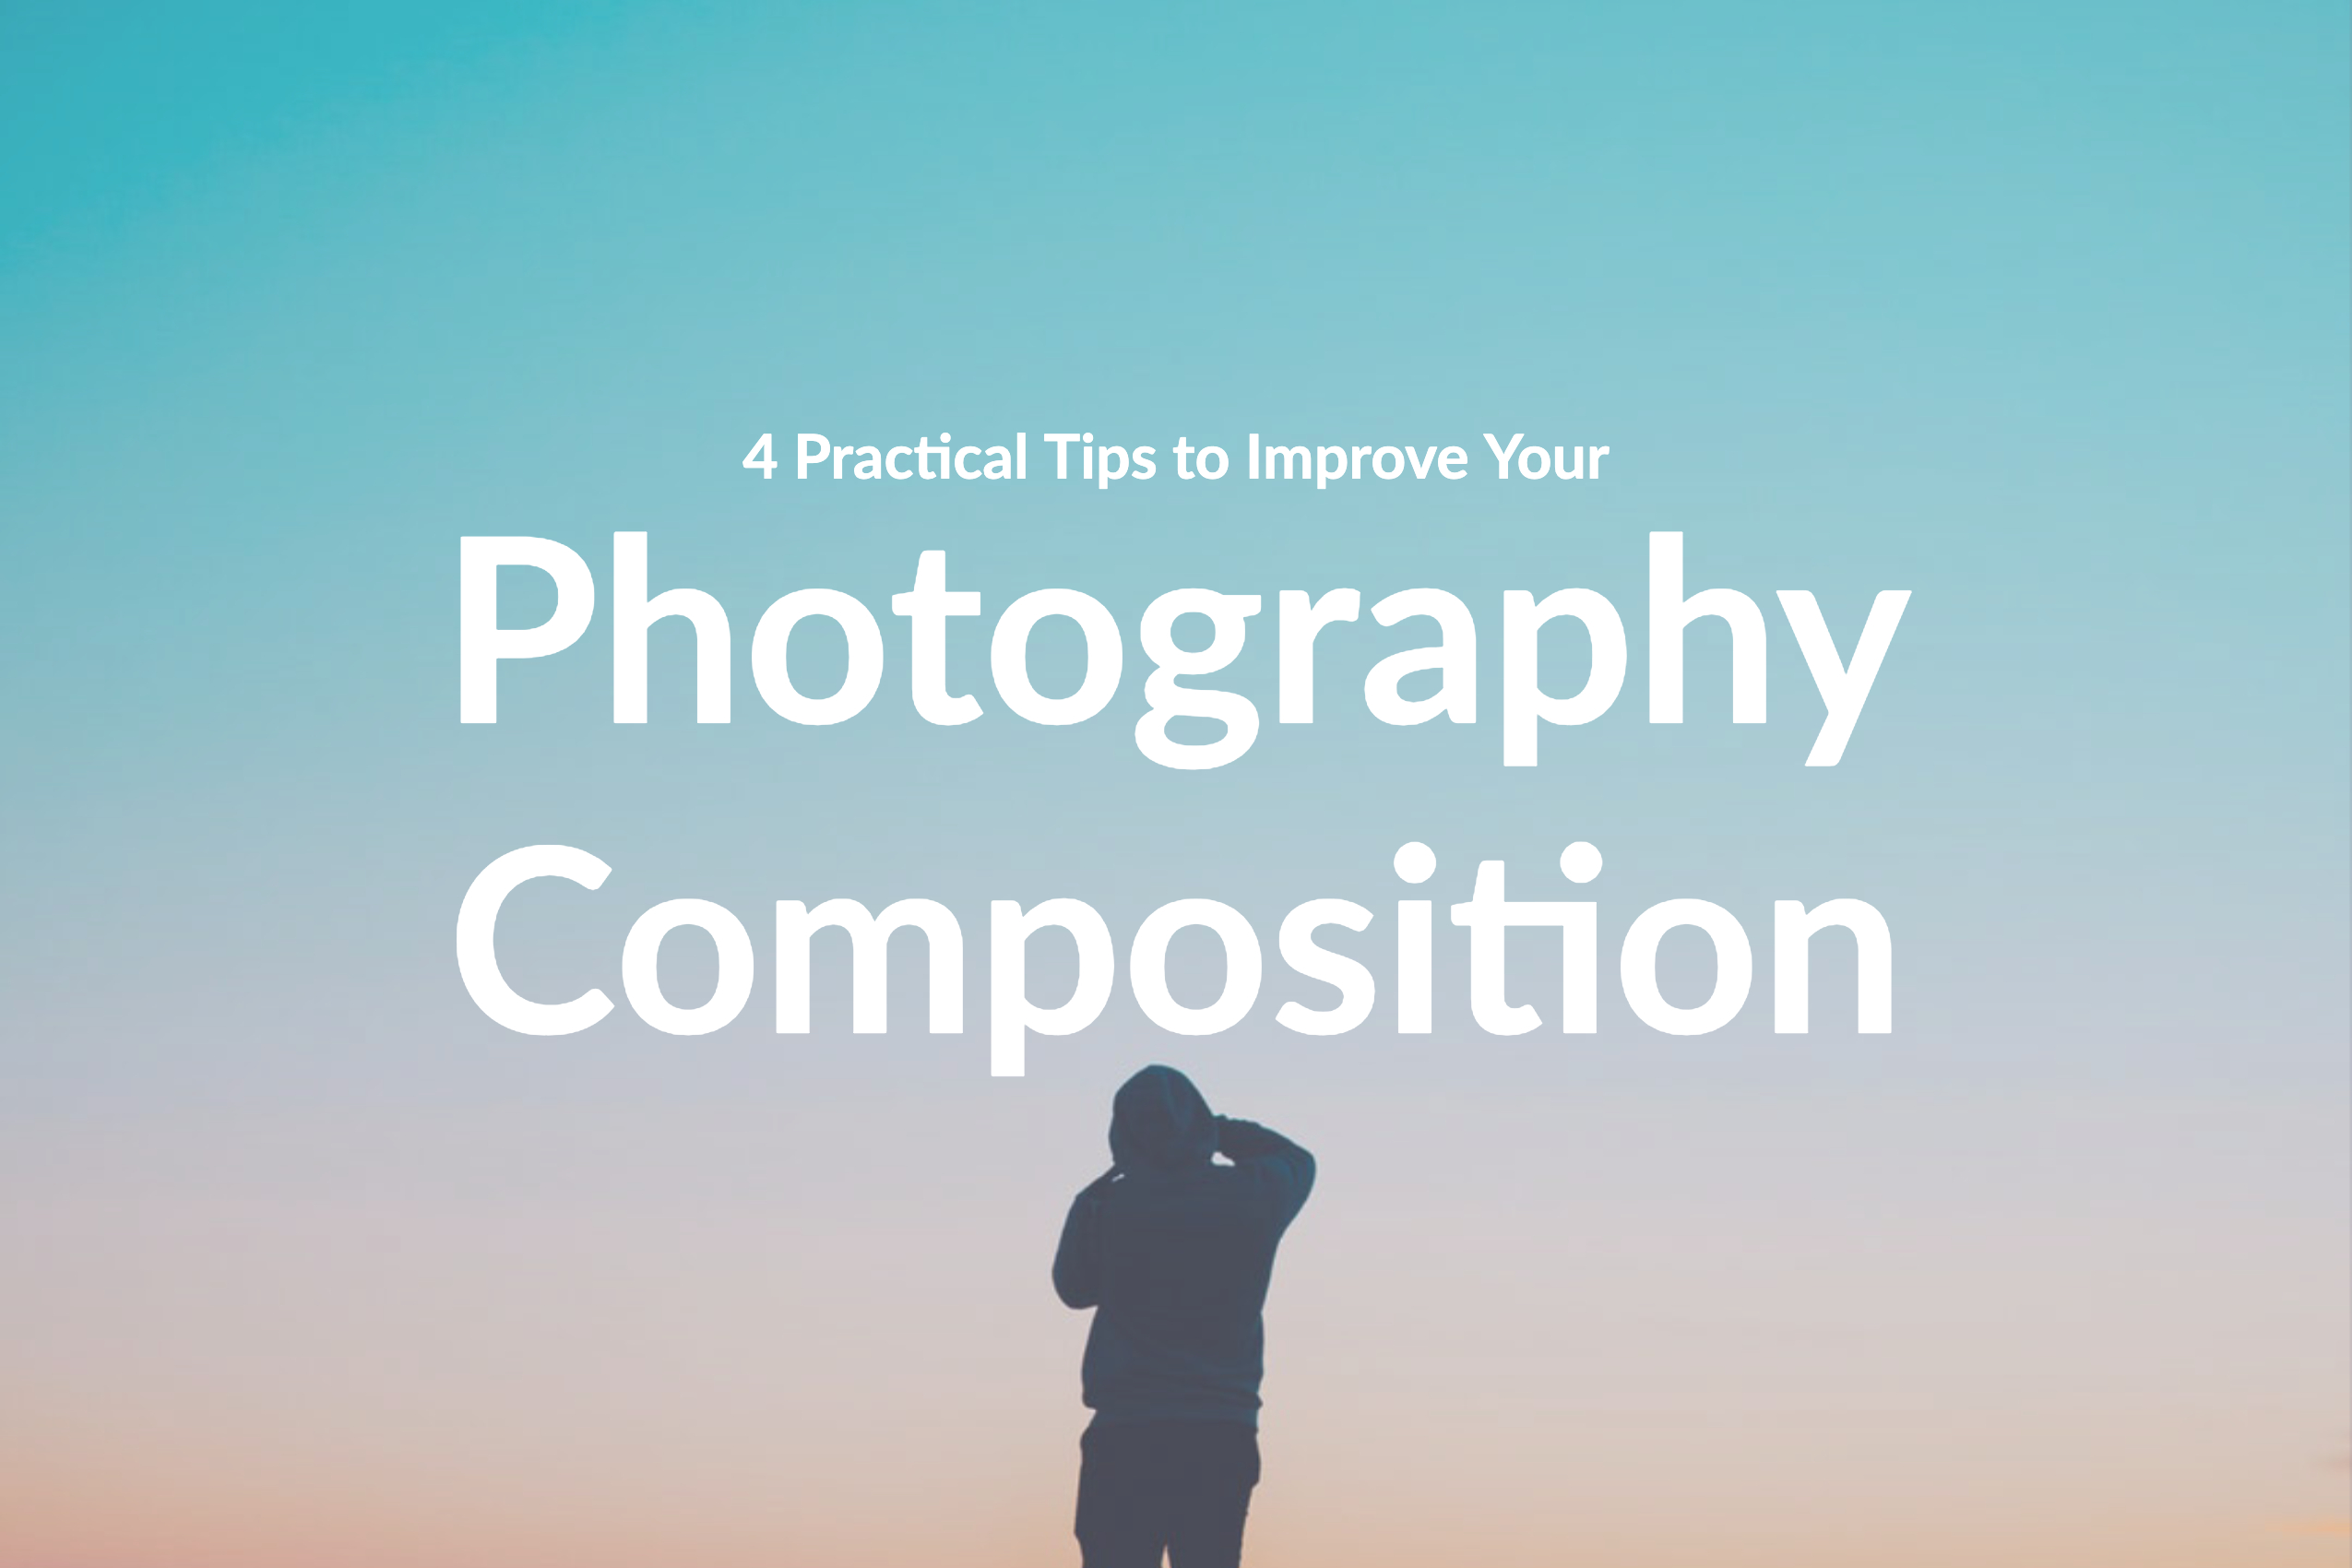 4 Practical Tips to Improve Your Photography Composition